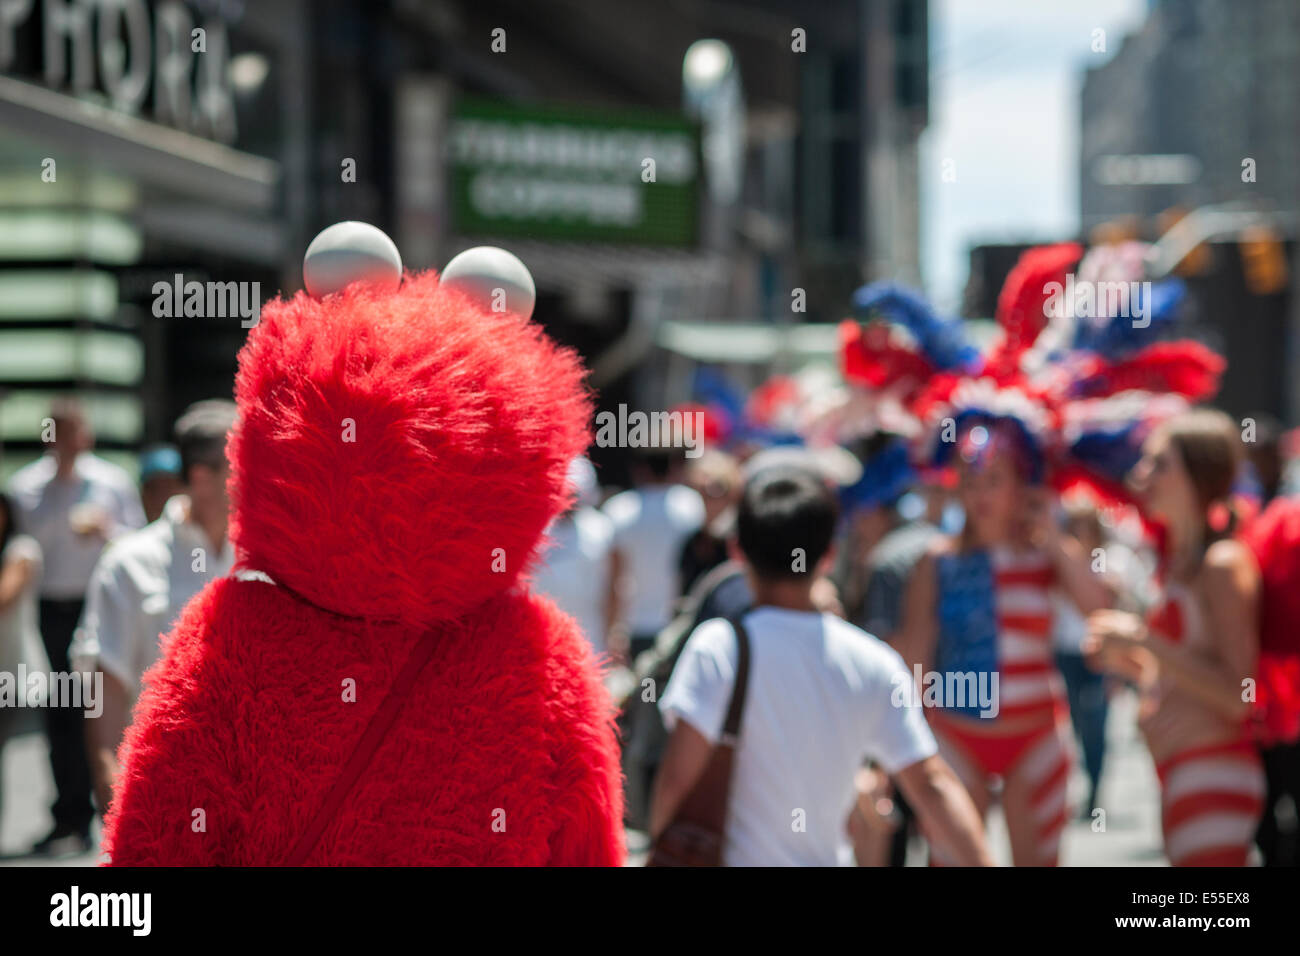 Elmo solicits tourists in Times Square in New York on Friday, July 18, 2014. - Stock Image